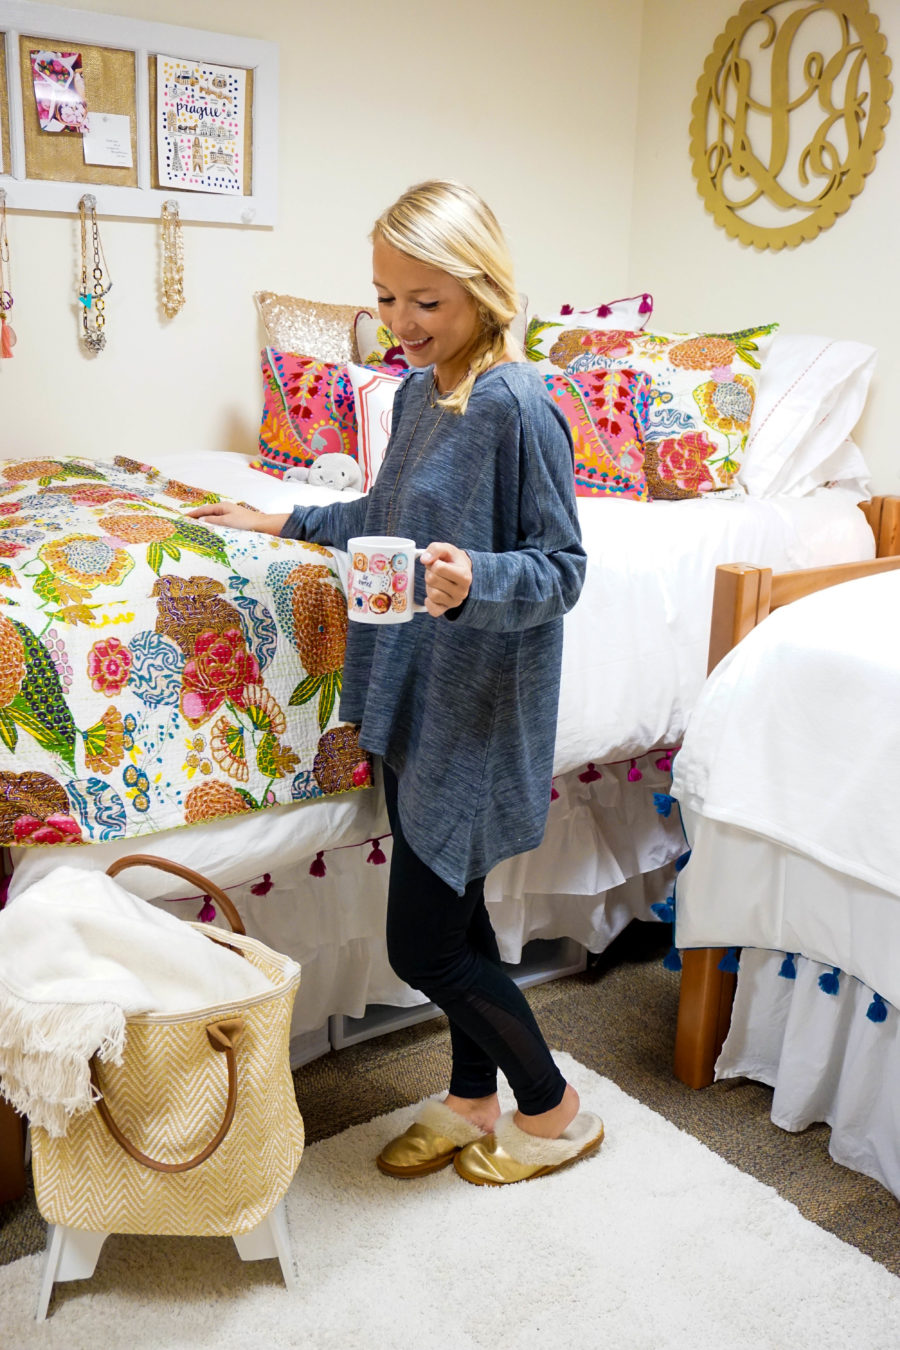 amy-littleson-from-i-believe-in-pink-dorm-room-decor-with-annie-selke-co-evelyn-henson-and-all-for-color_